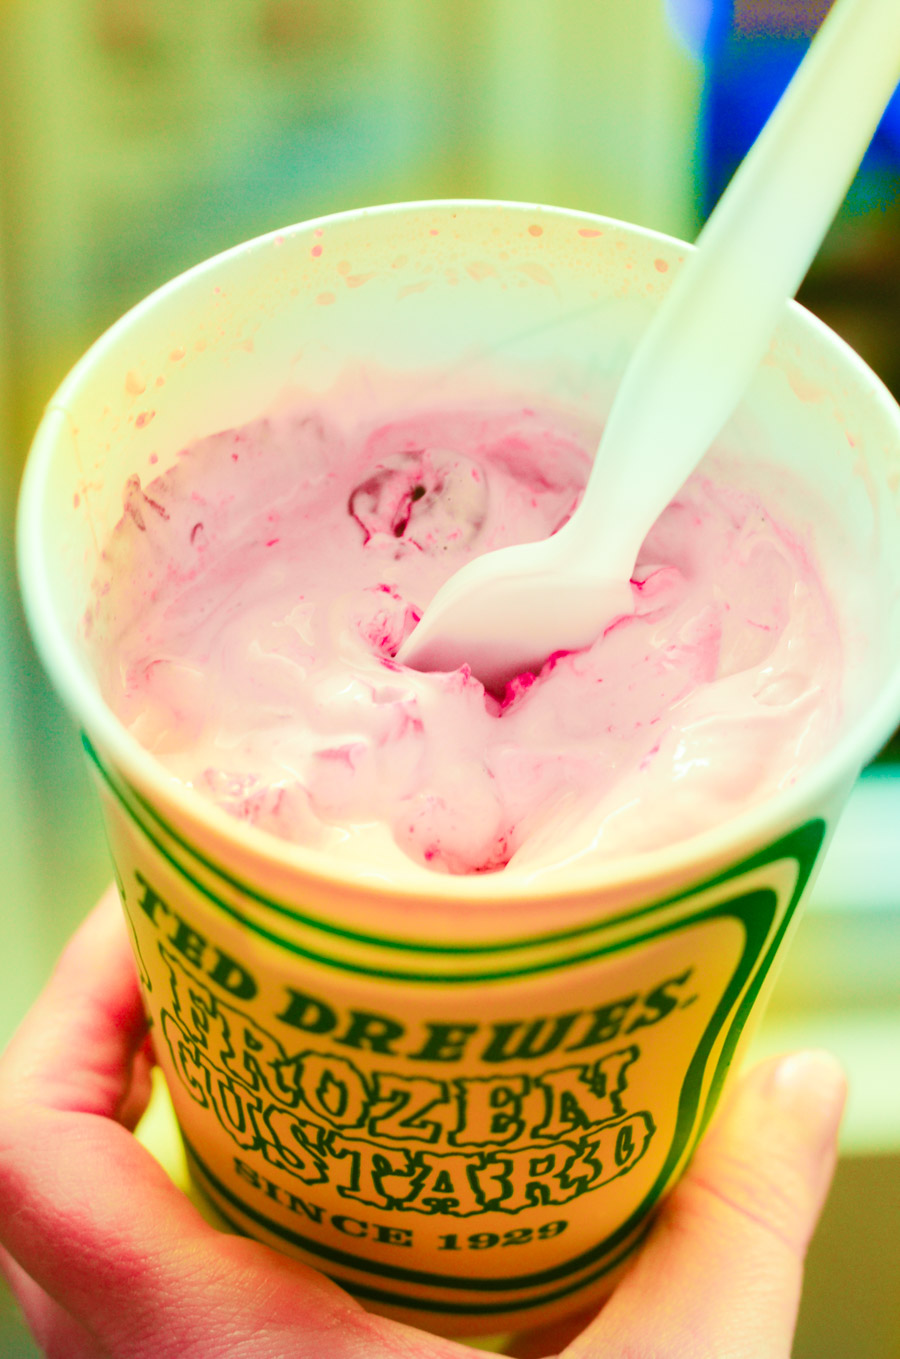 Where to Eat in St. Louis | Restaurant Guide | Ted Drewes